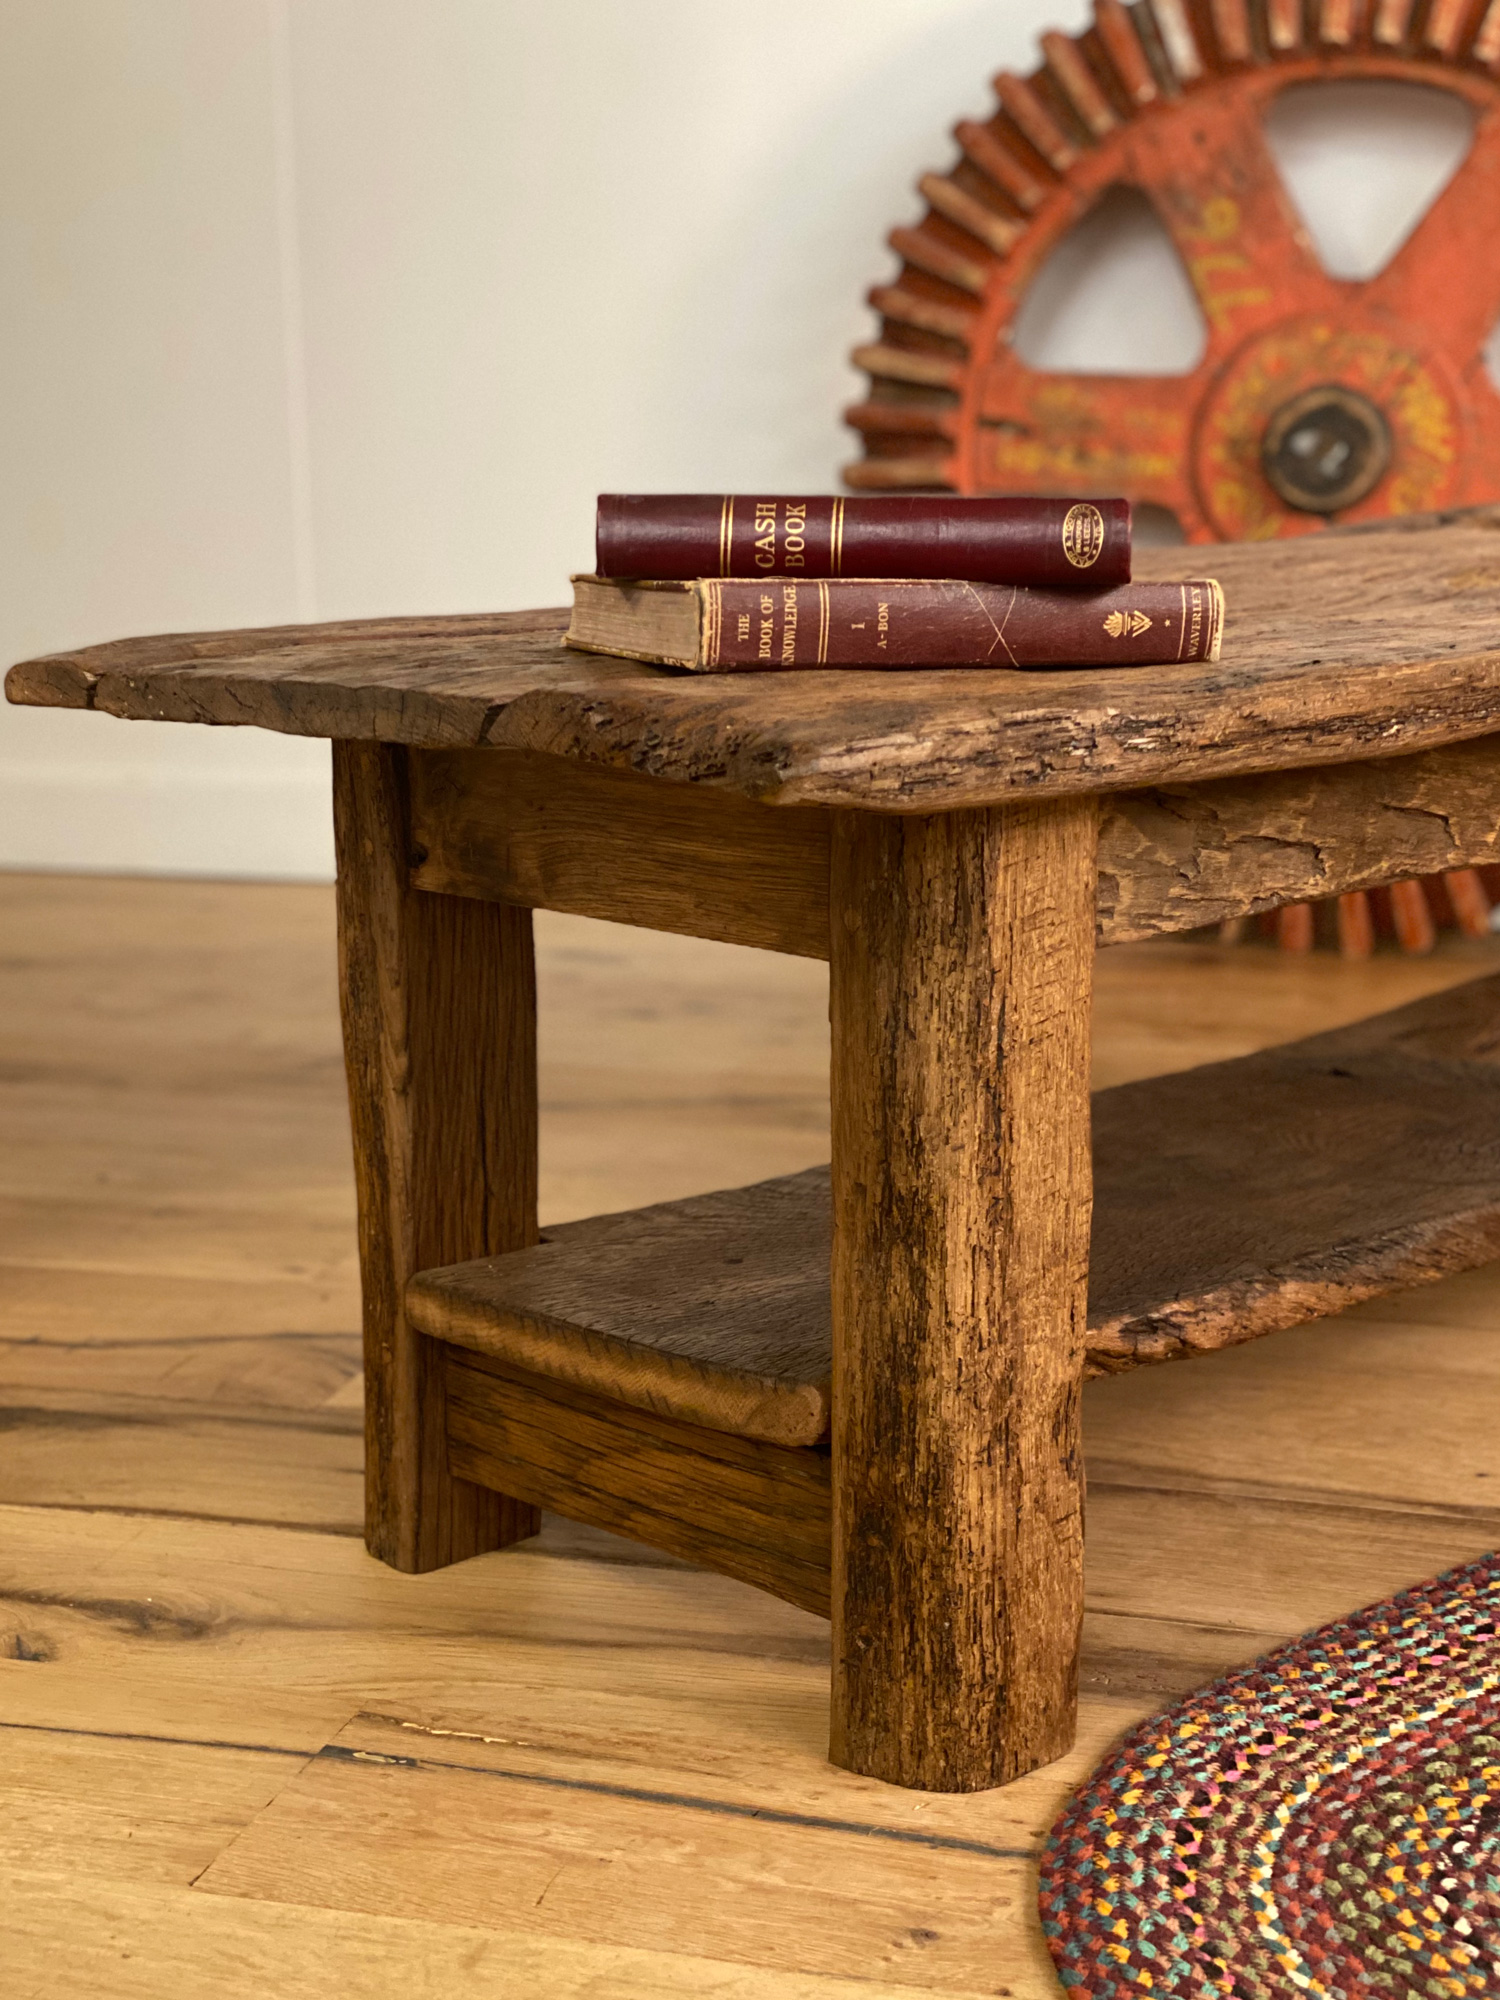 Rustic Coffee Table with Books